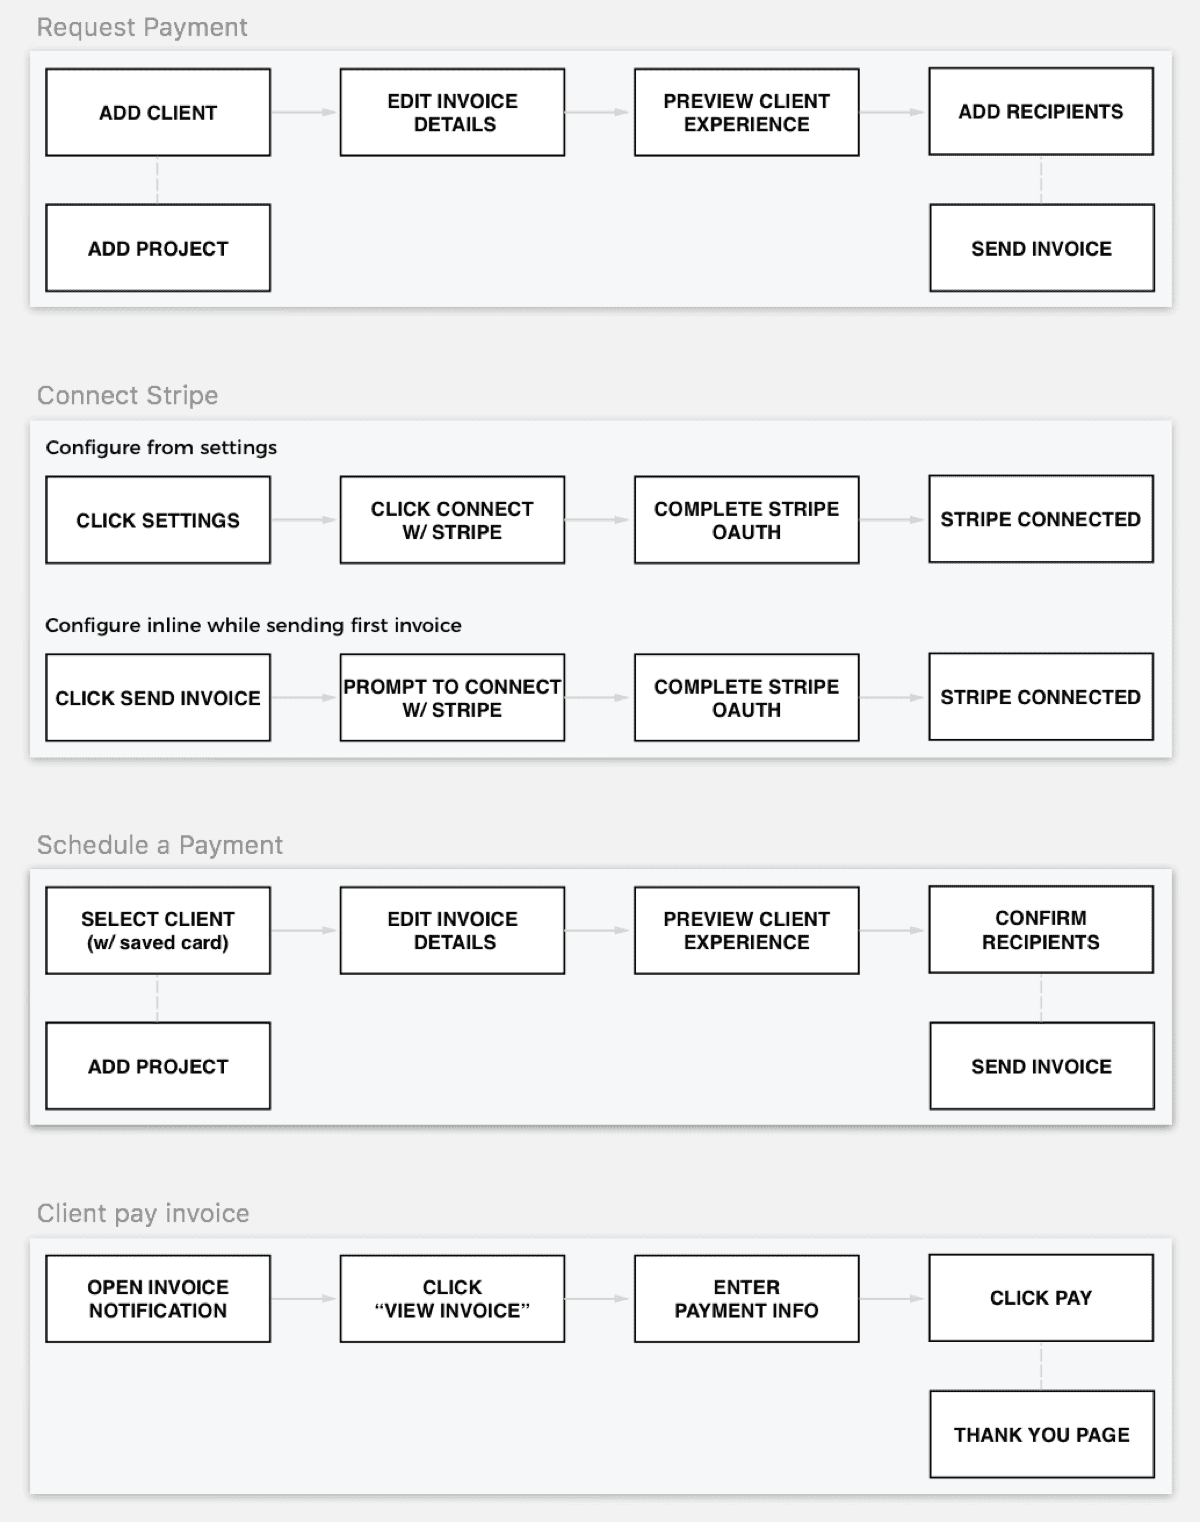 Flow diagrams for initial user actions